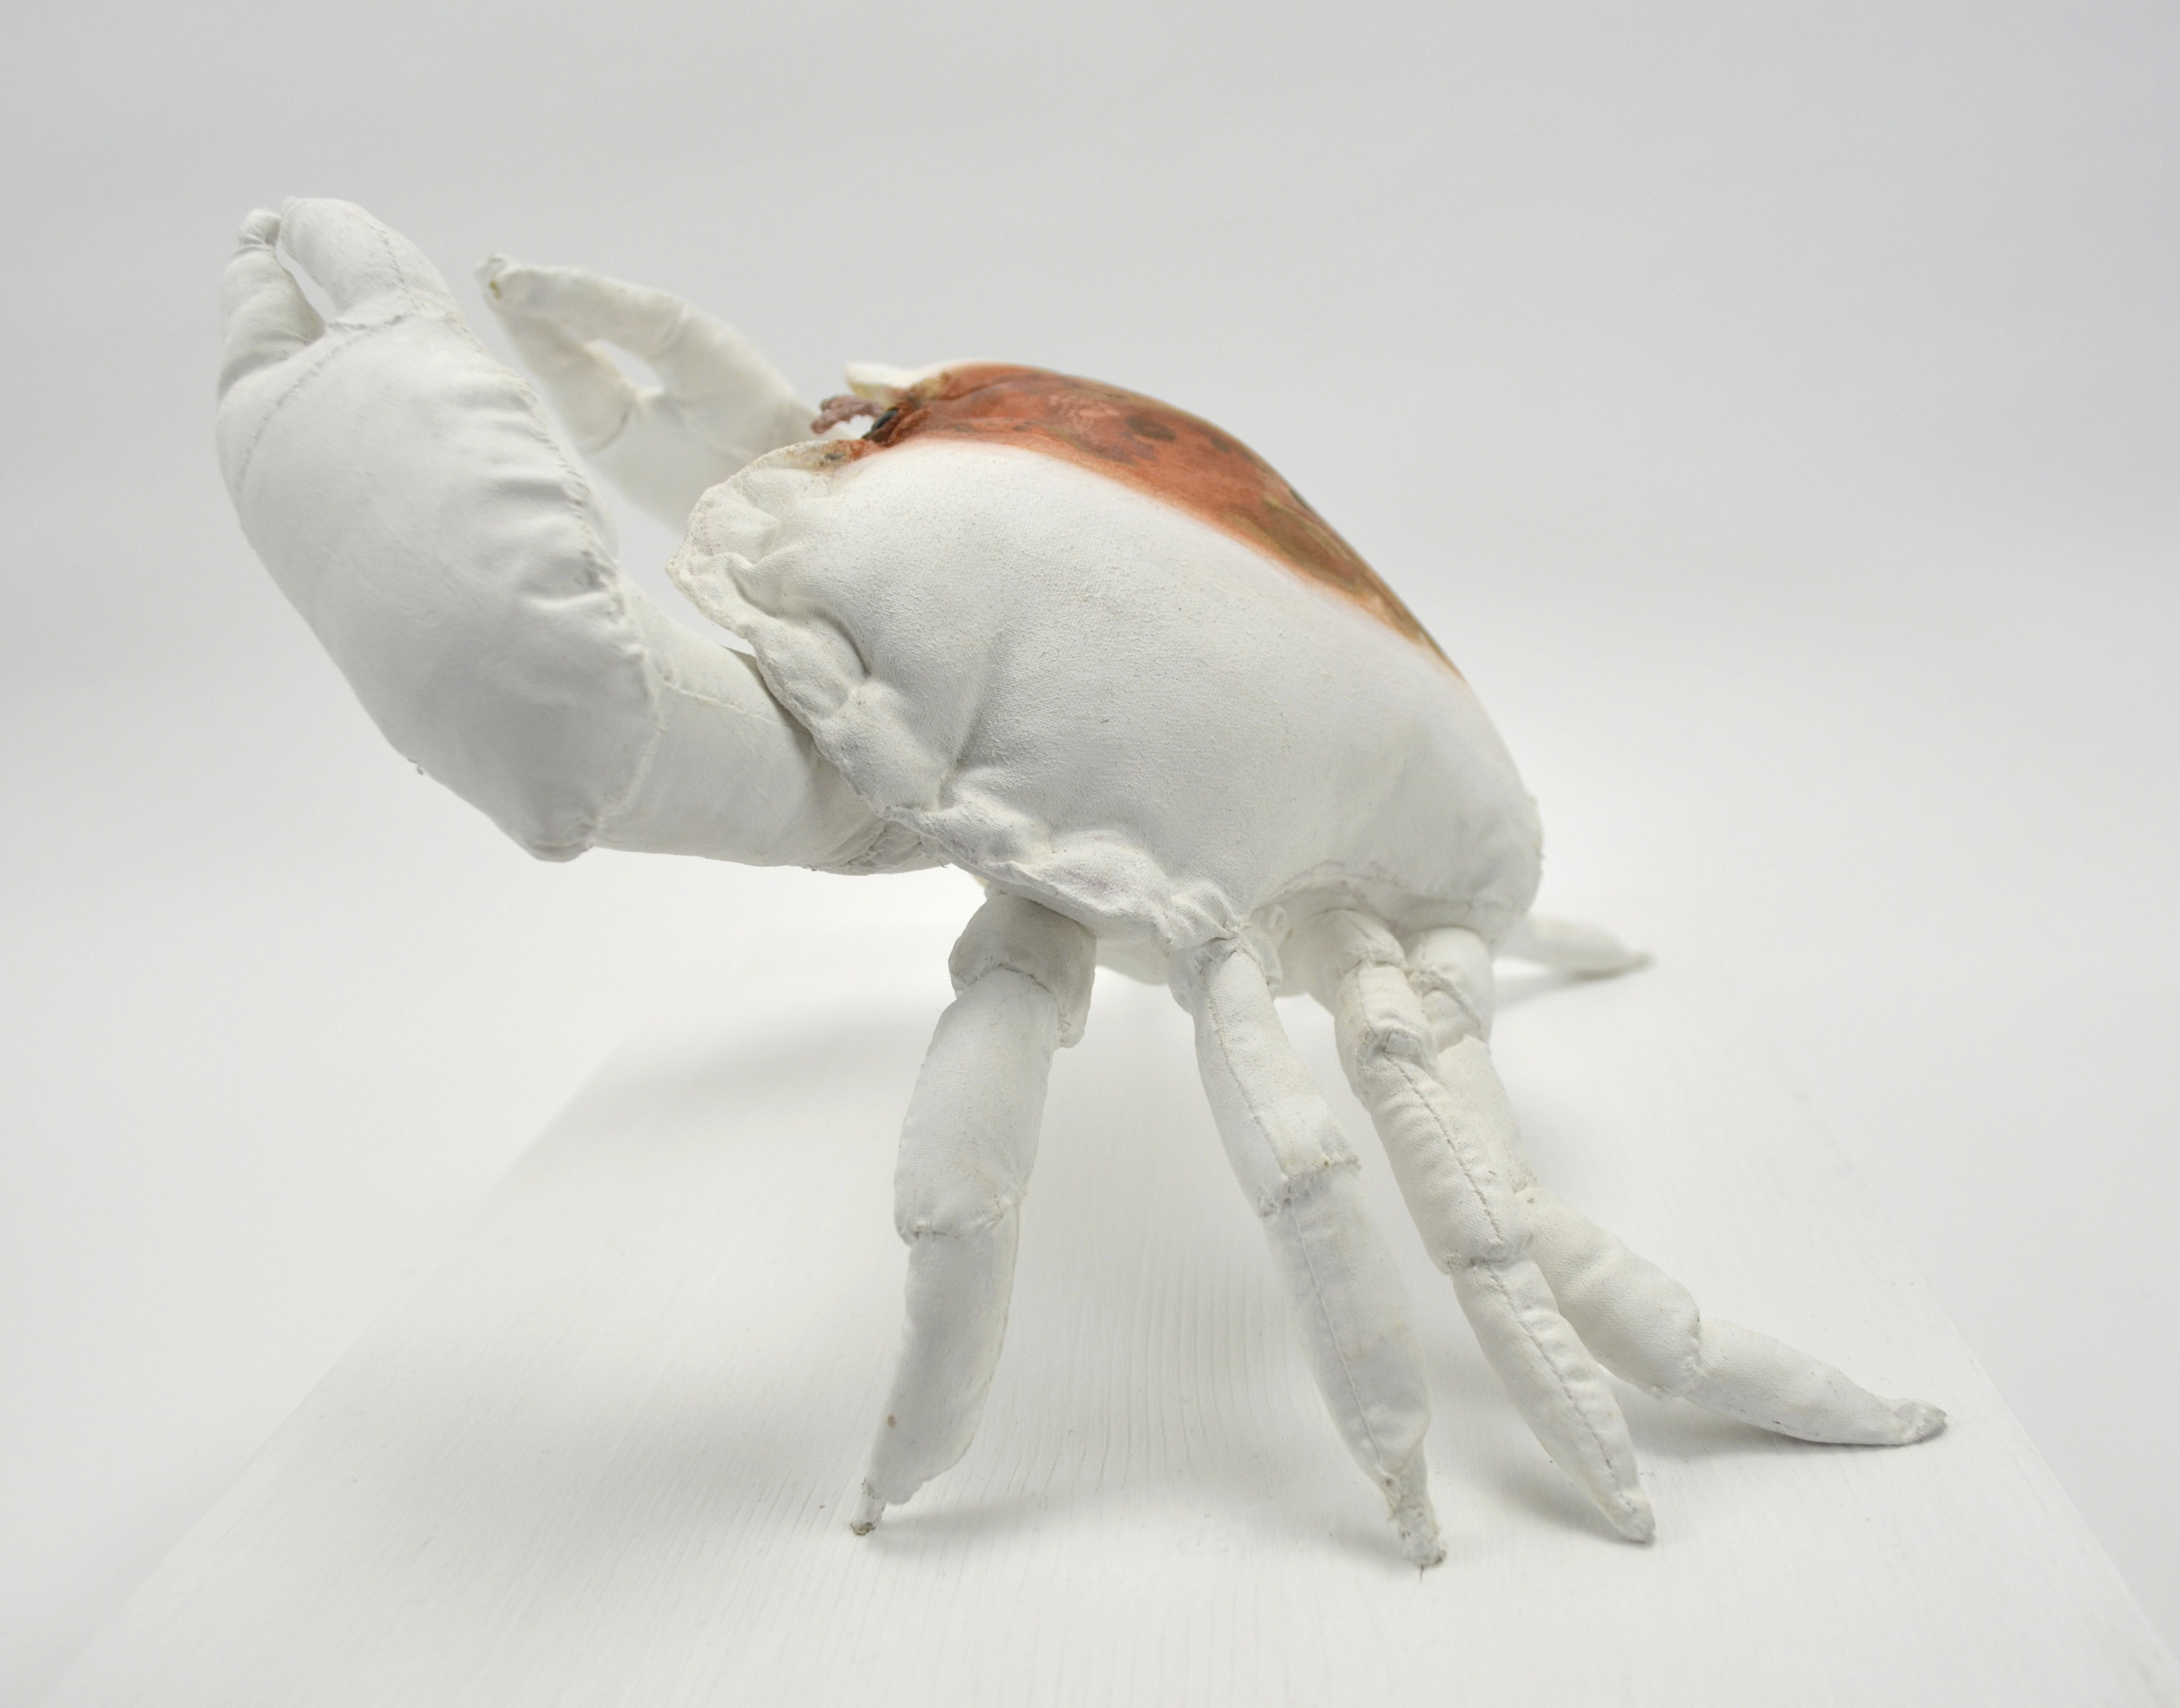 The Defender (Edible Crab) side view